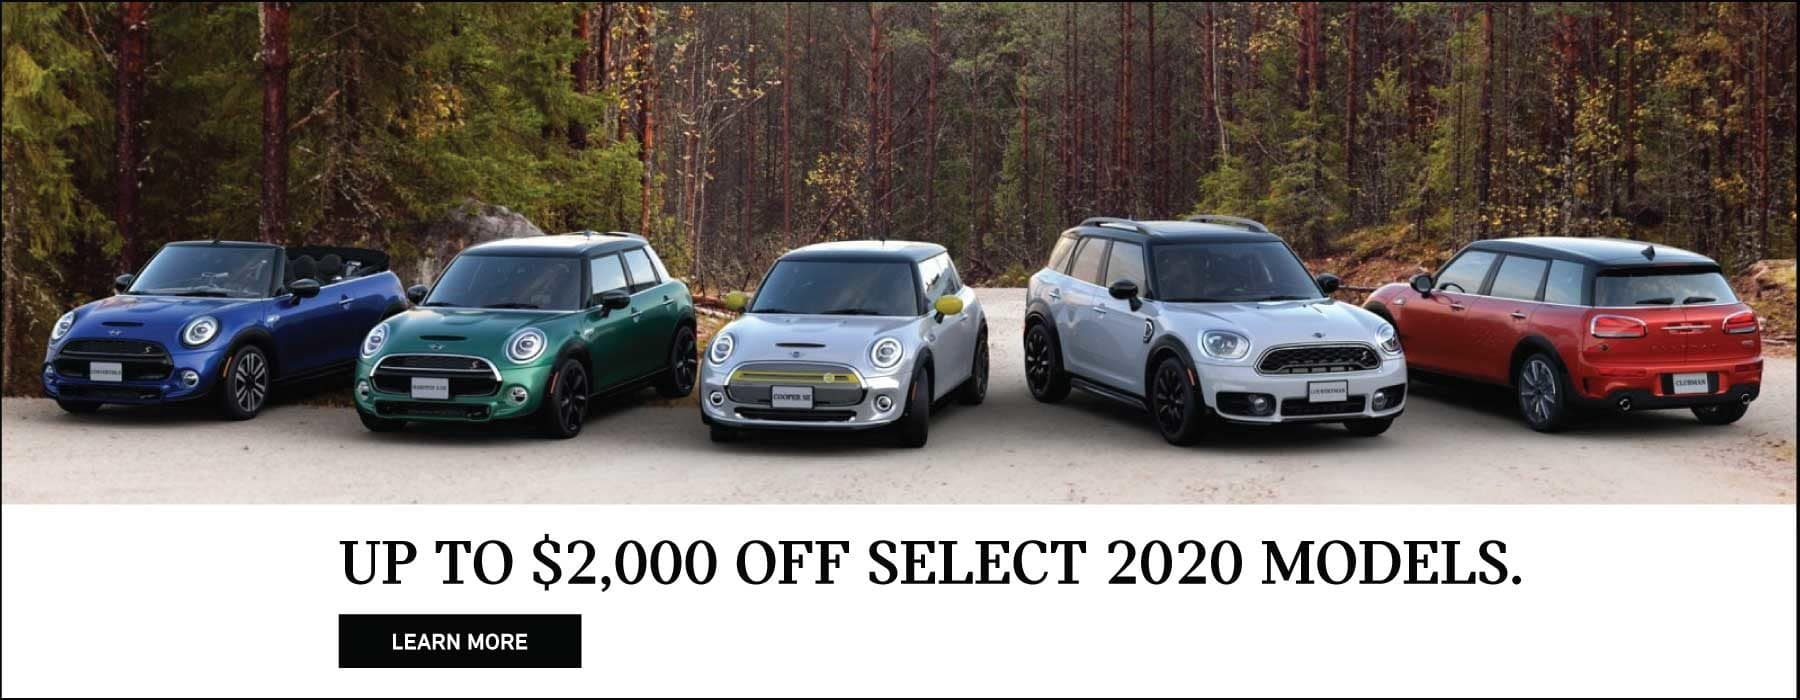 Up to $2,000 off select mini models. MINI Family Parked in forest.